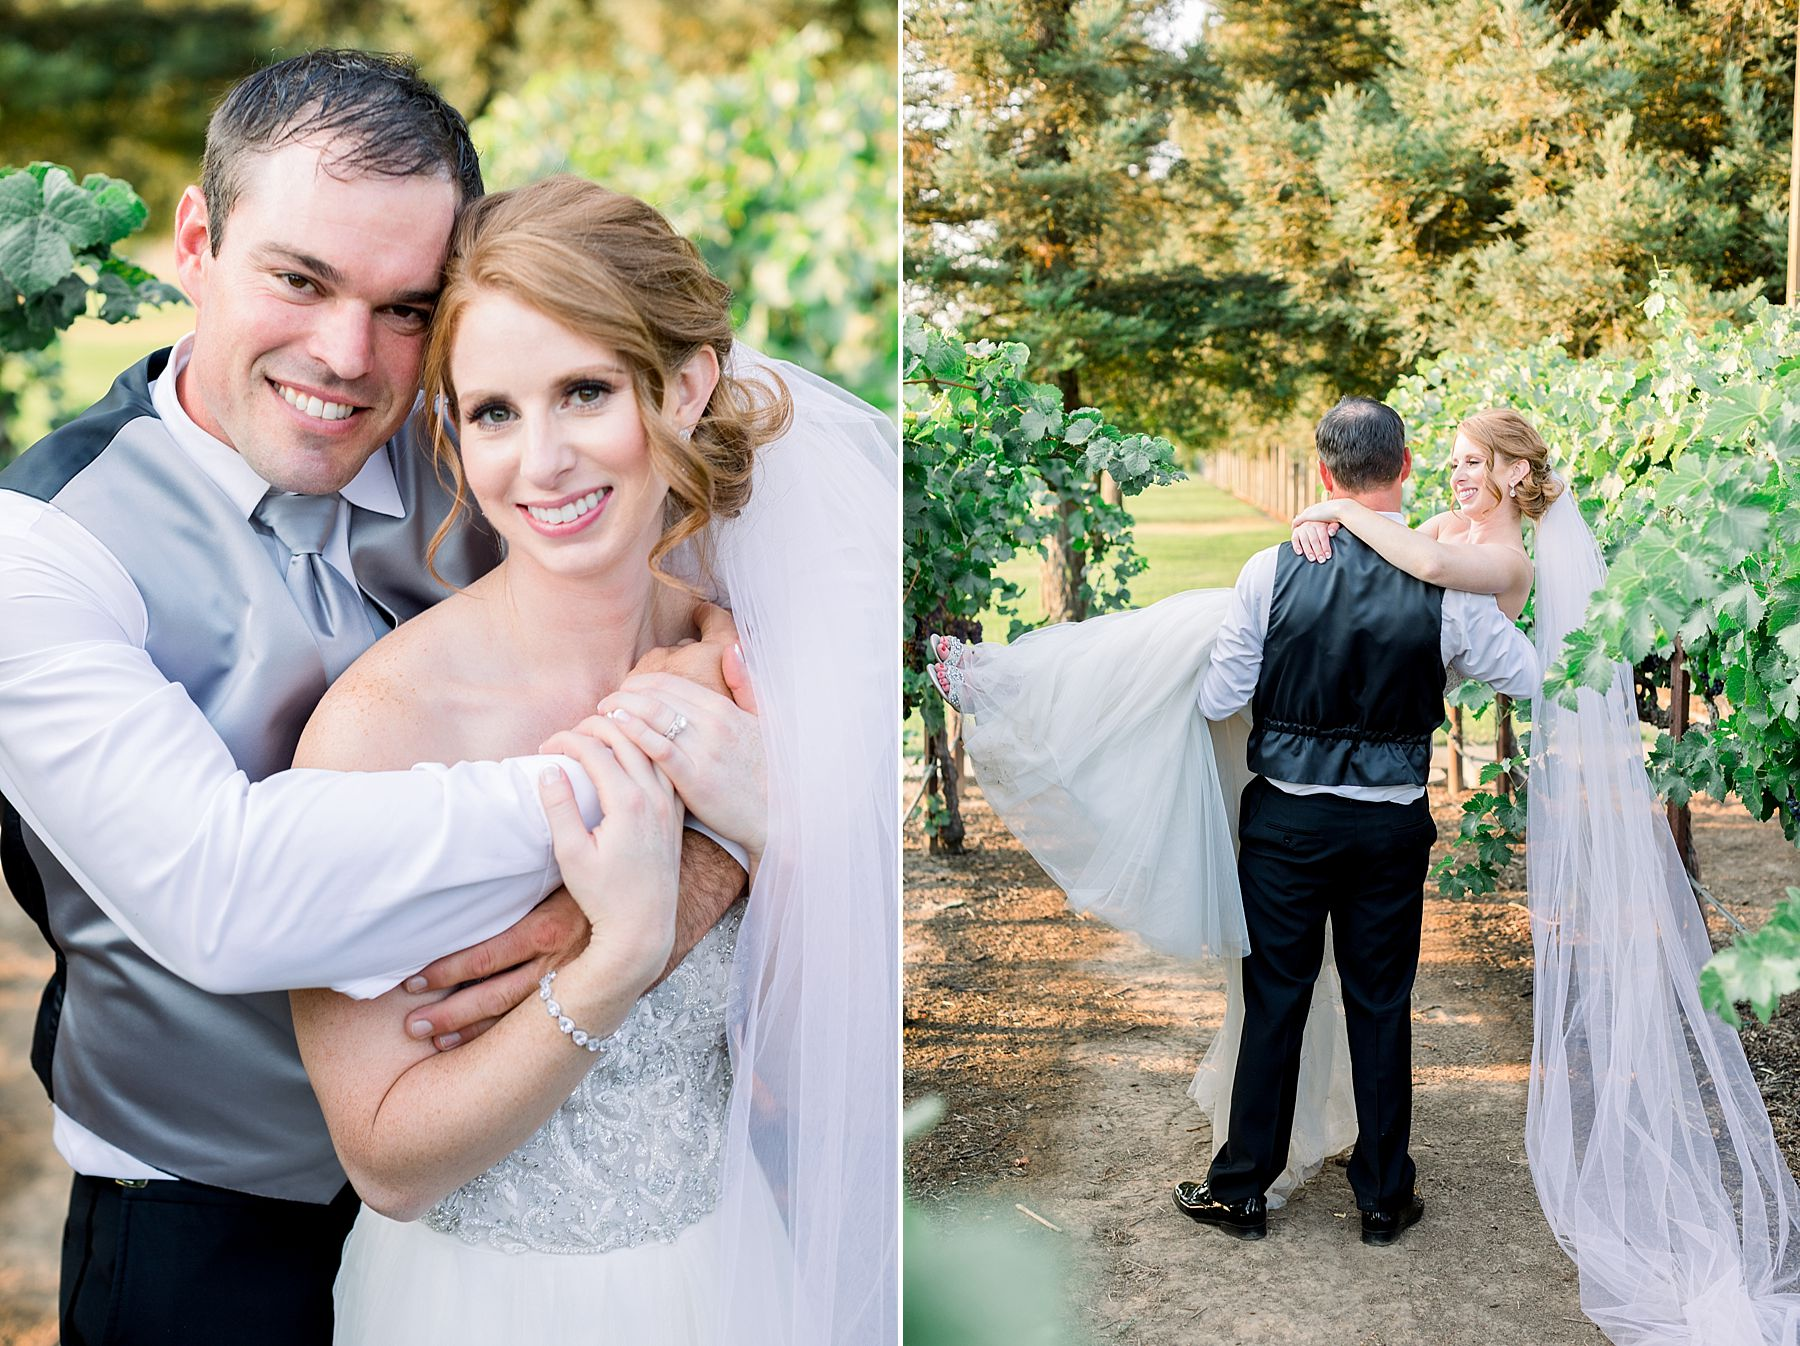 Wine and Roses Wedding - Wine and Roses Lodi Wedding Photographer - Sacramento Film Wedding Photographer - Ashley Baumgartner - Sacramento Luxury Wedding Photographer_0048.jpg